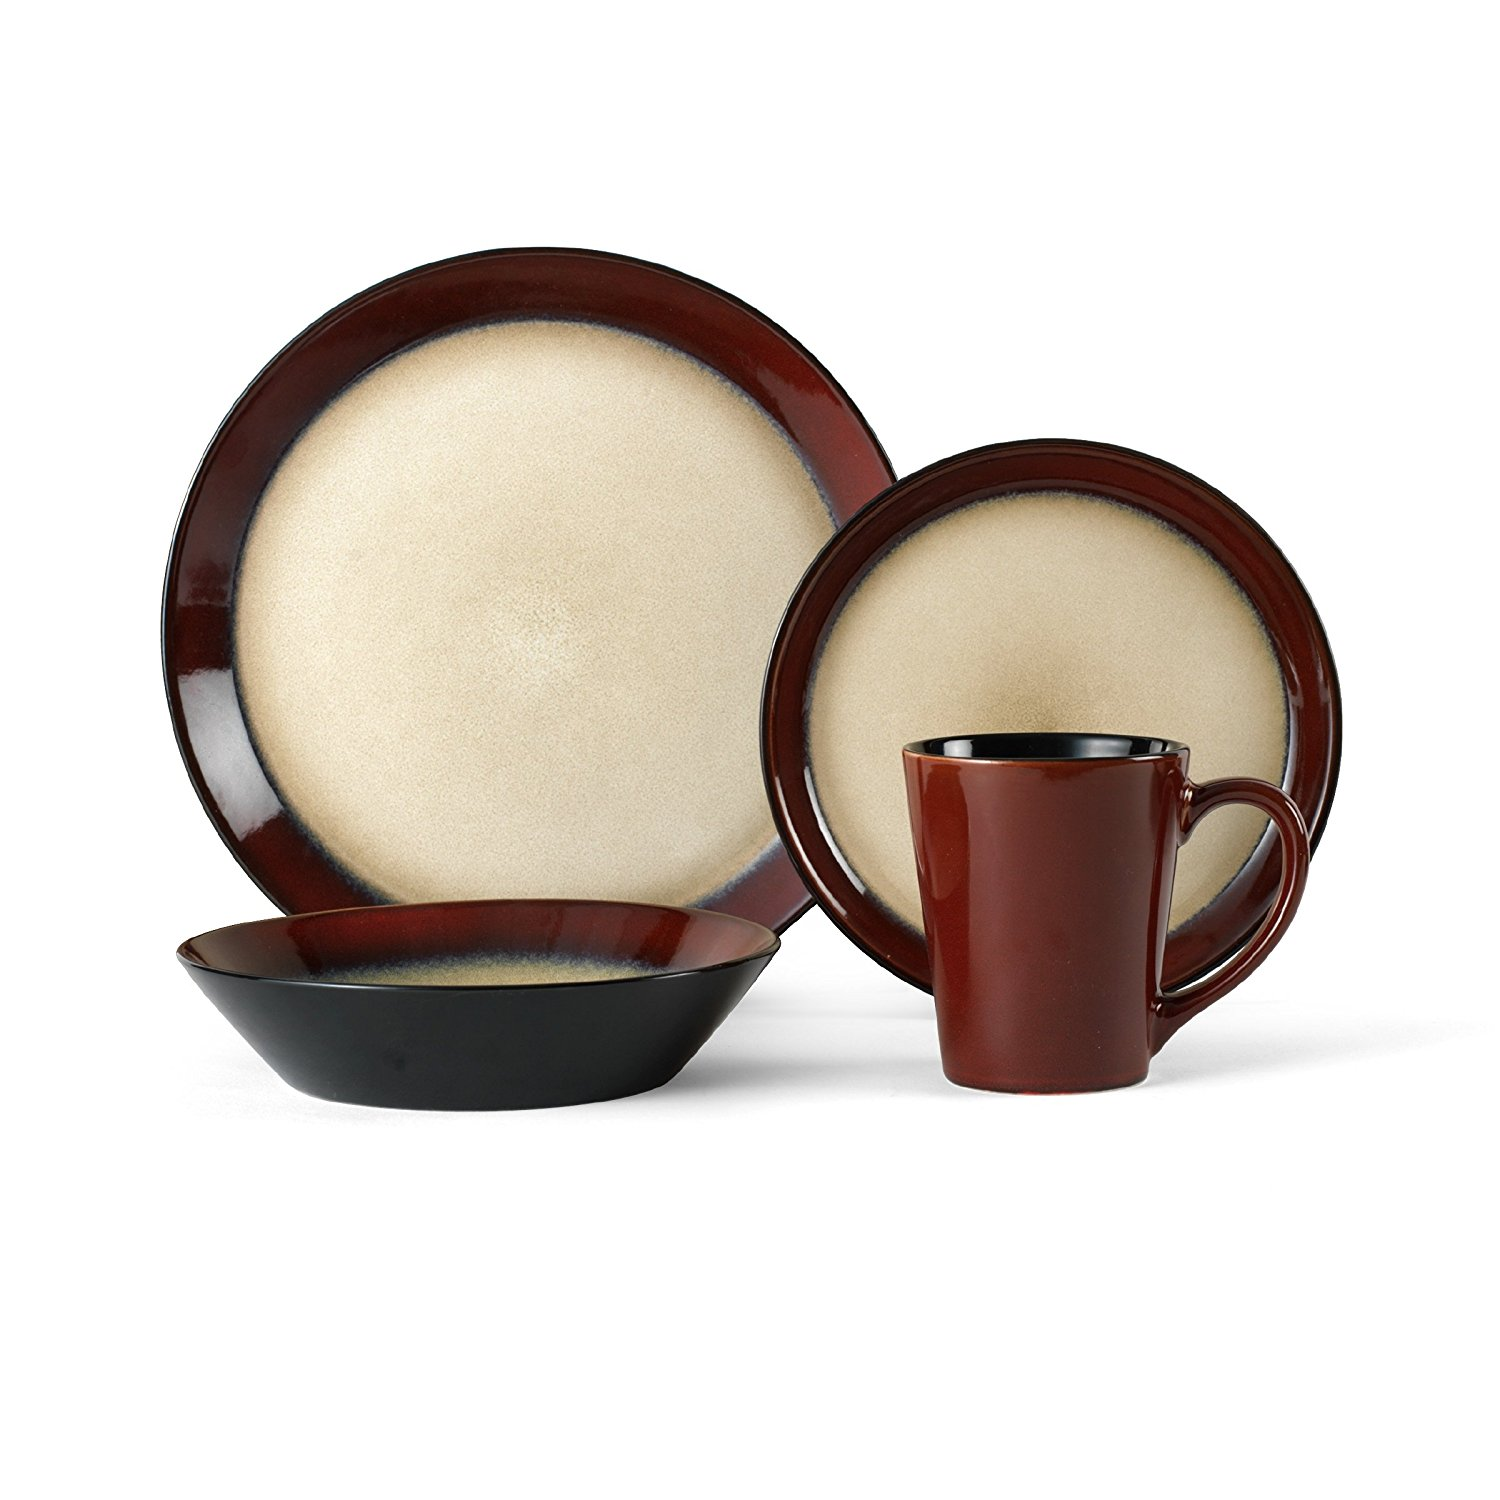 Green Stoneware Dinnerware Sets | Mikasa Dinnerware | Stoneware Dinnerware Sets